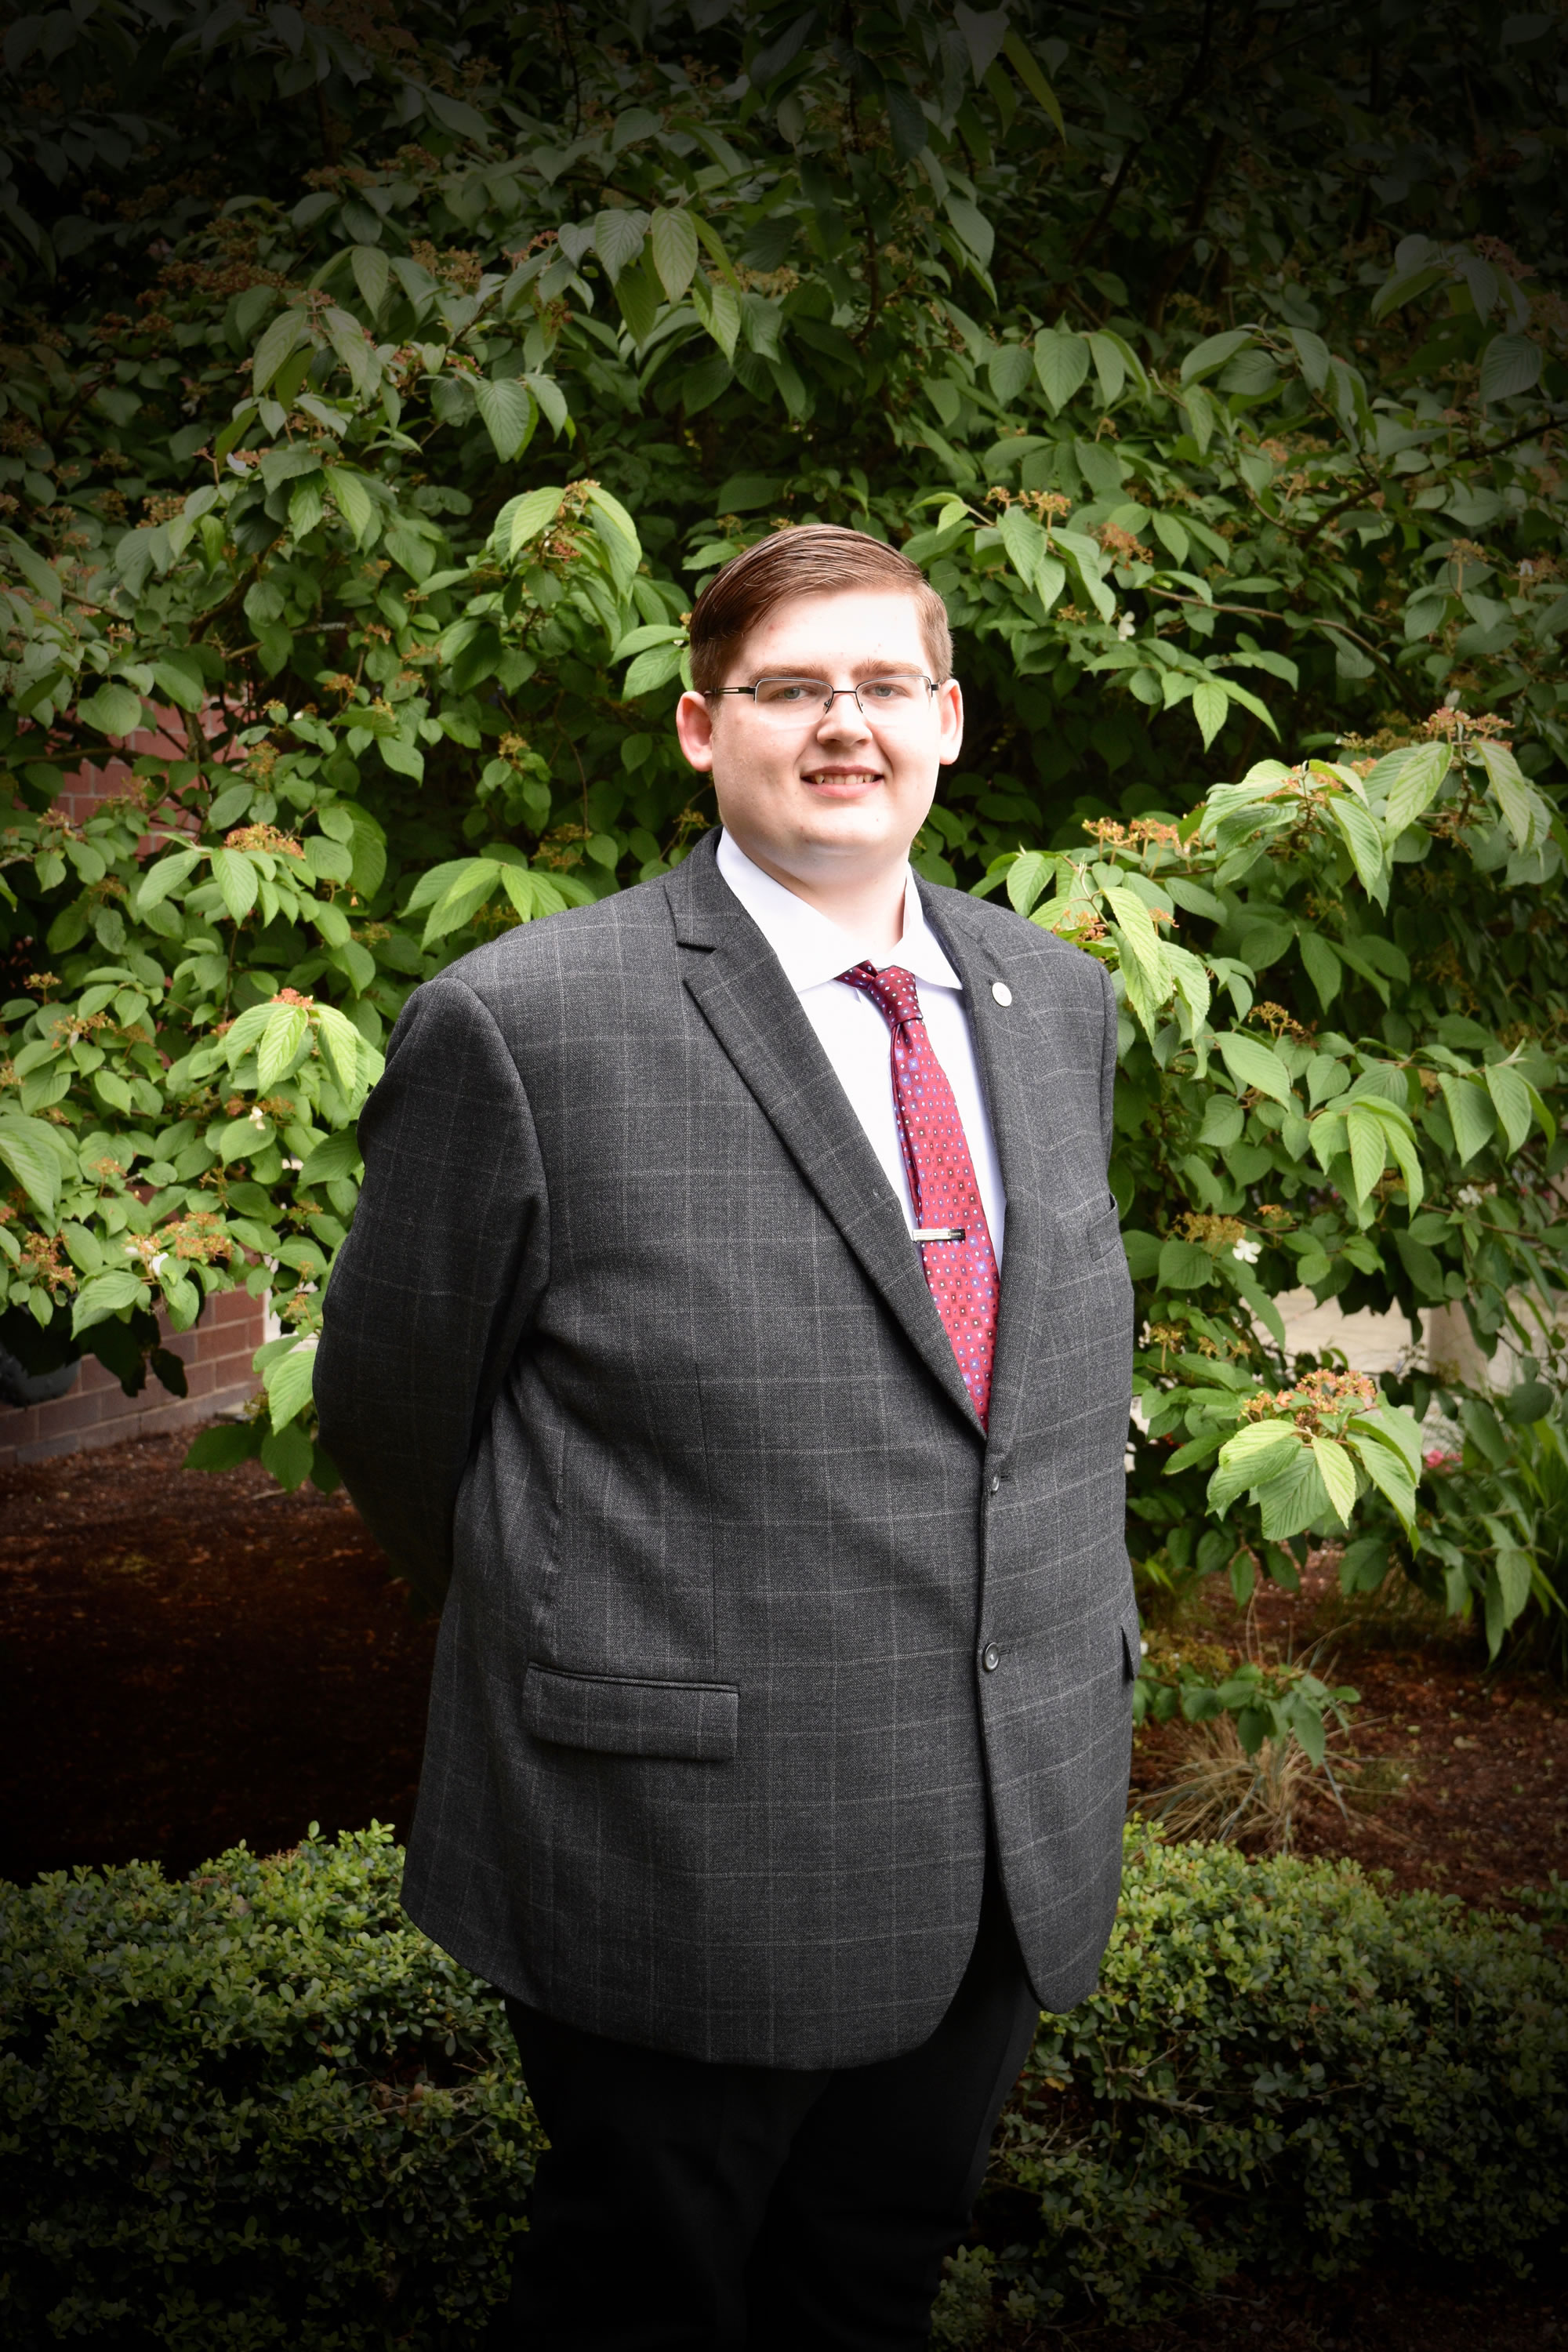 Andrew P. Cline - Staff Accountant